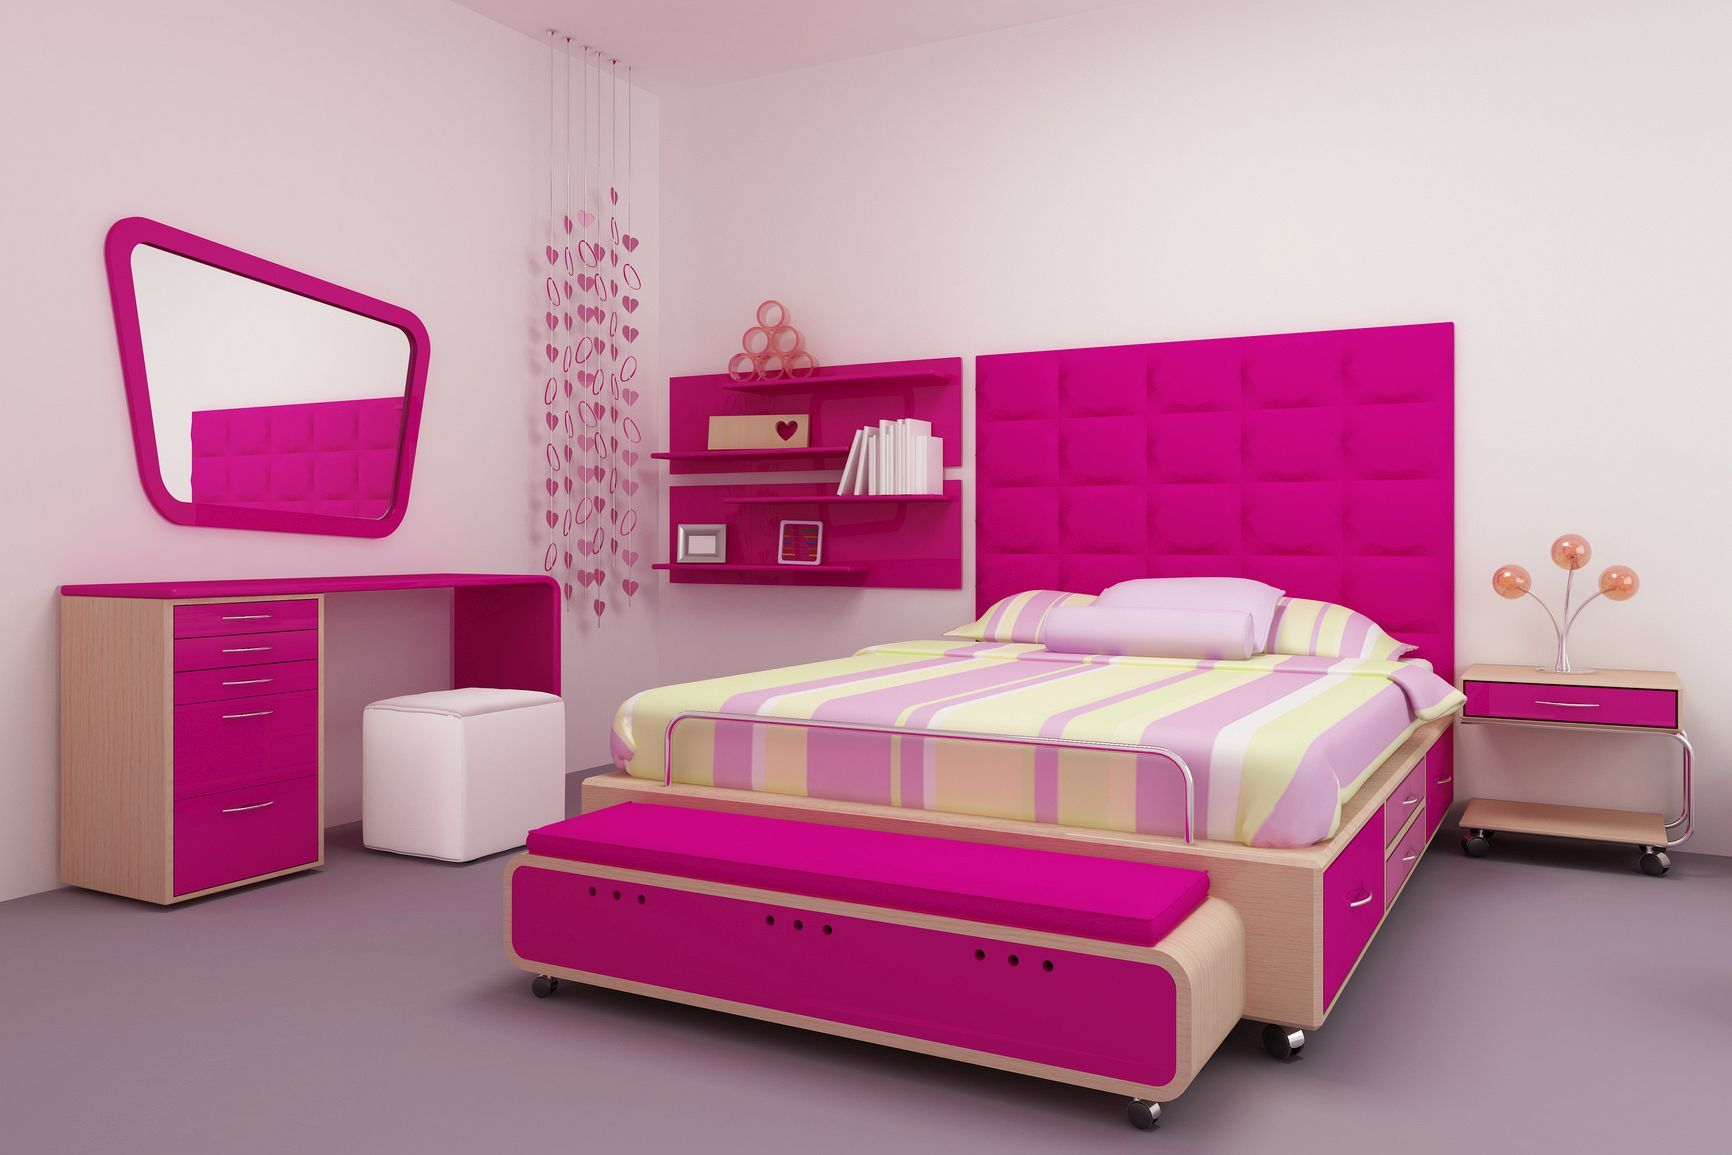 Merveilleux 5 Stylish Bedroom Designs For Your Comfort   Bedroom Is The Last Room In  Your Household That You Might Think About Decorating Or Re Arranging  Because No One ...